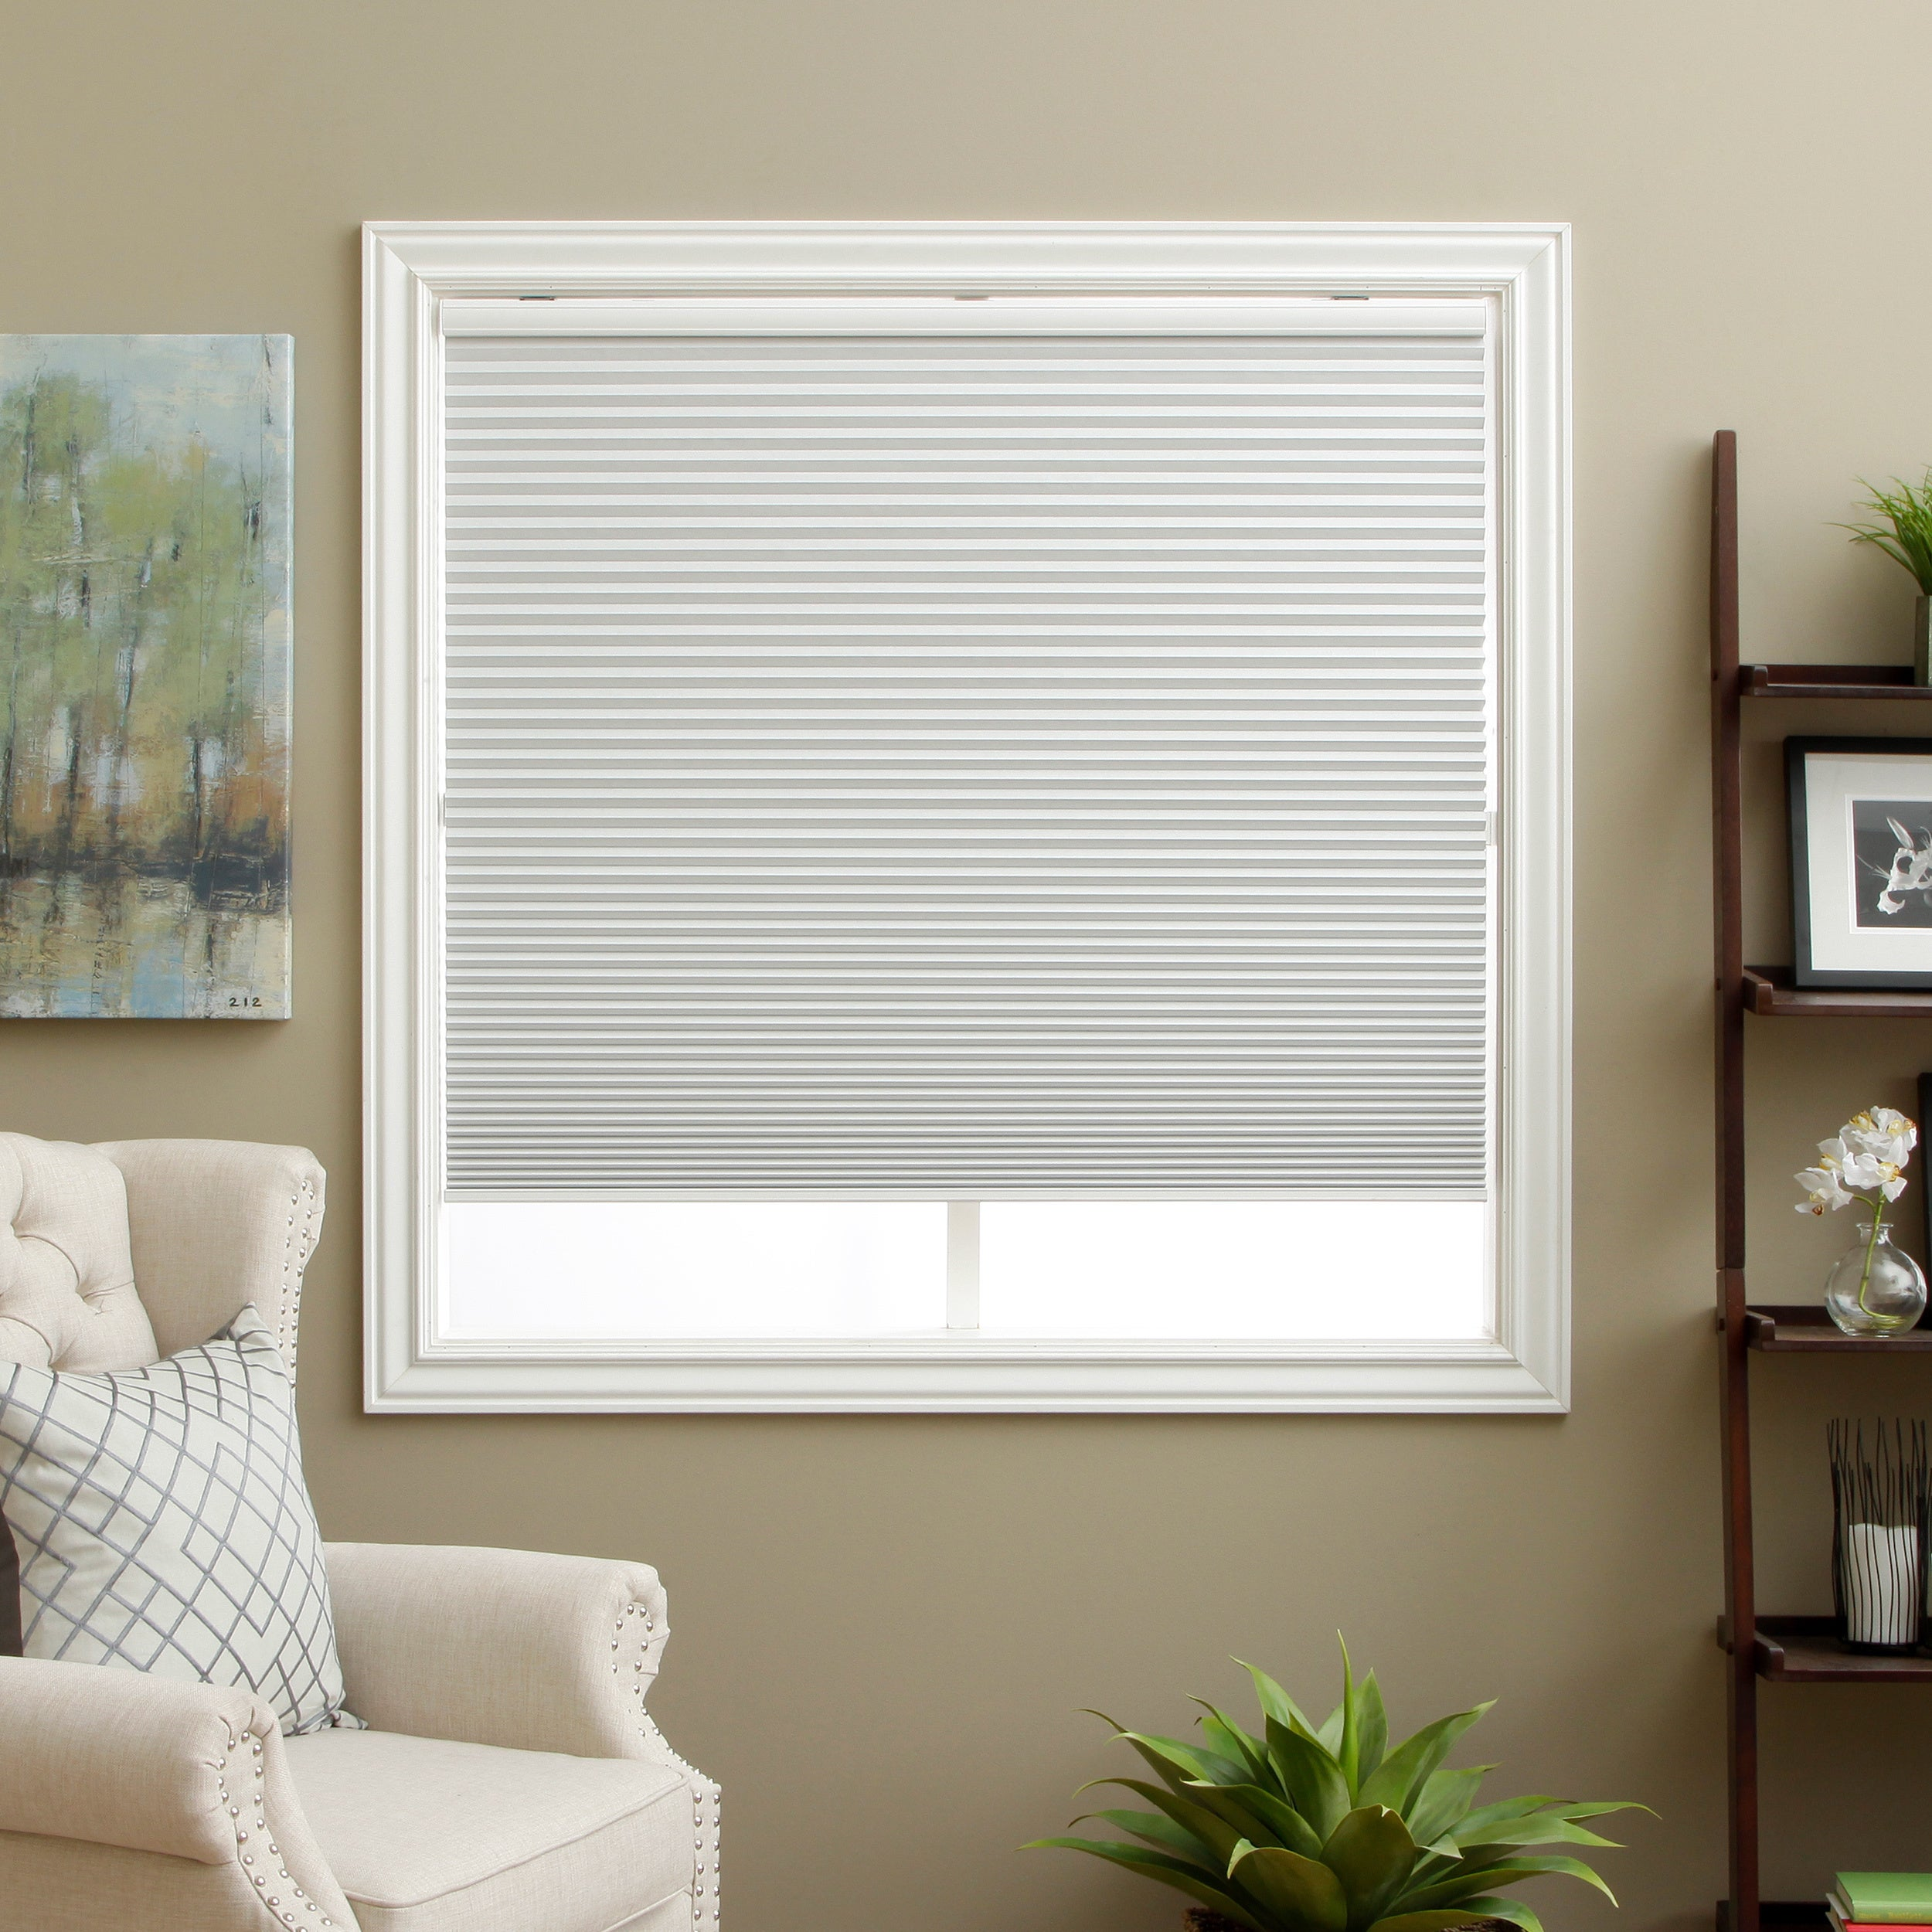 cordless blackout cellular shade honeycomb window blind light diffuser white new ebay. Black Bedroom Furniture Sets. Home Design Ideas